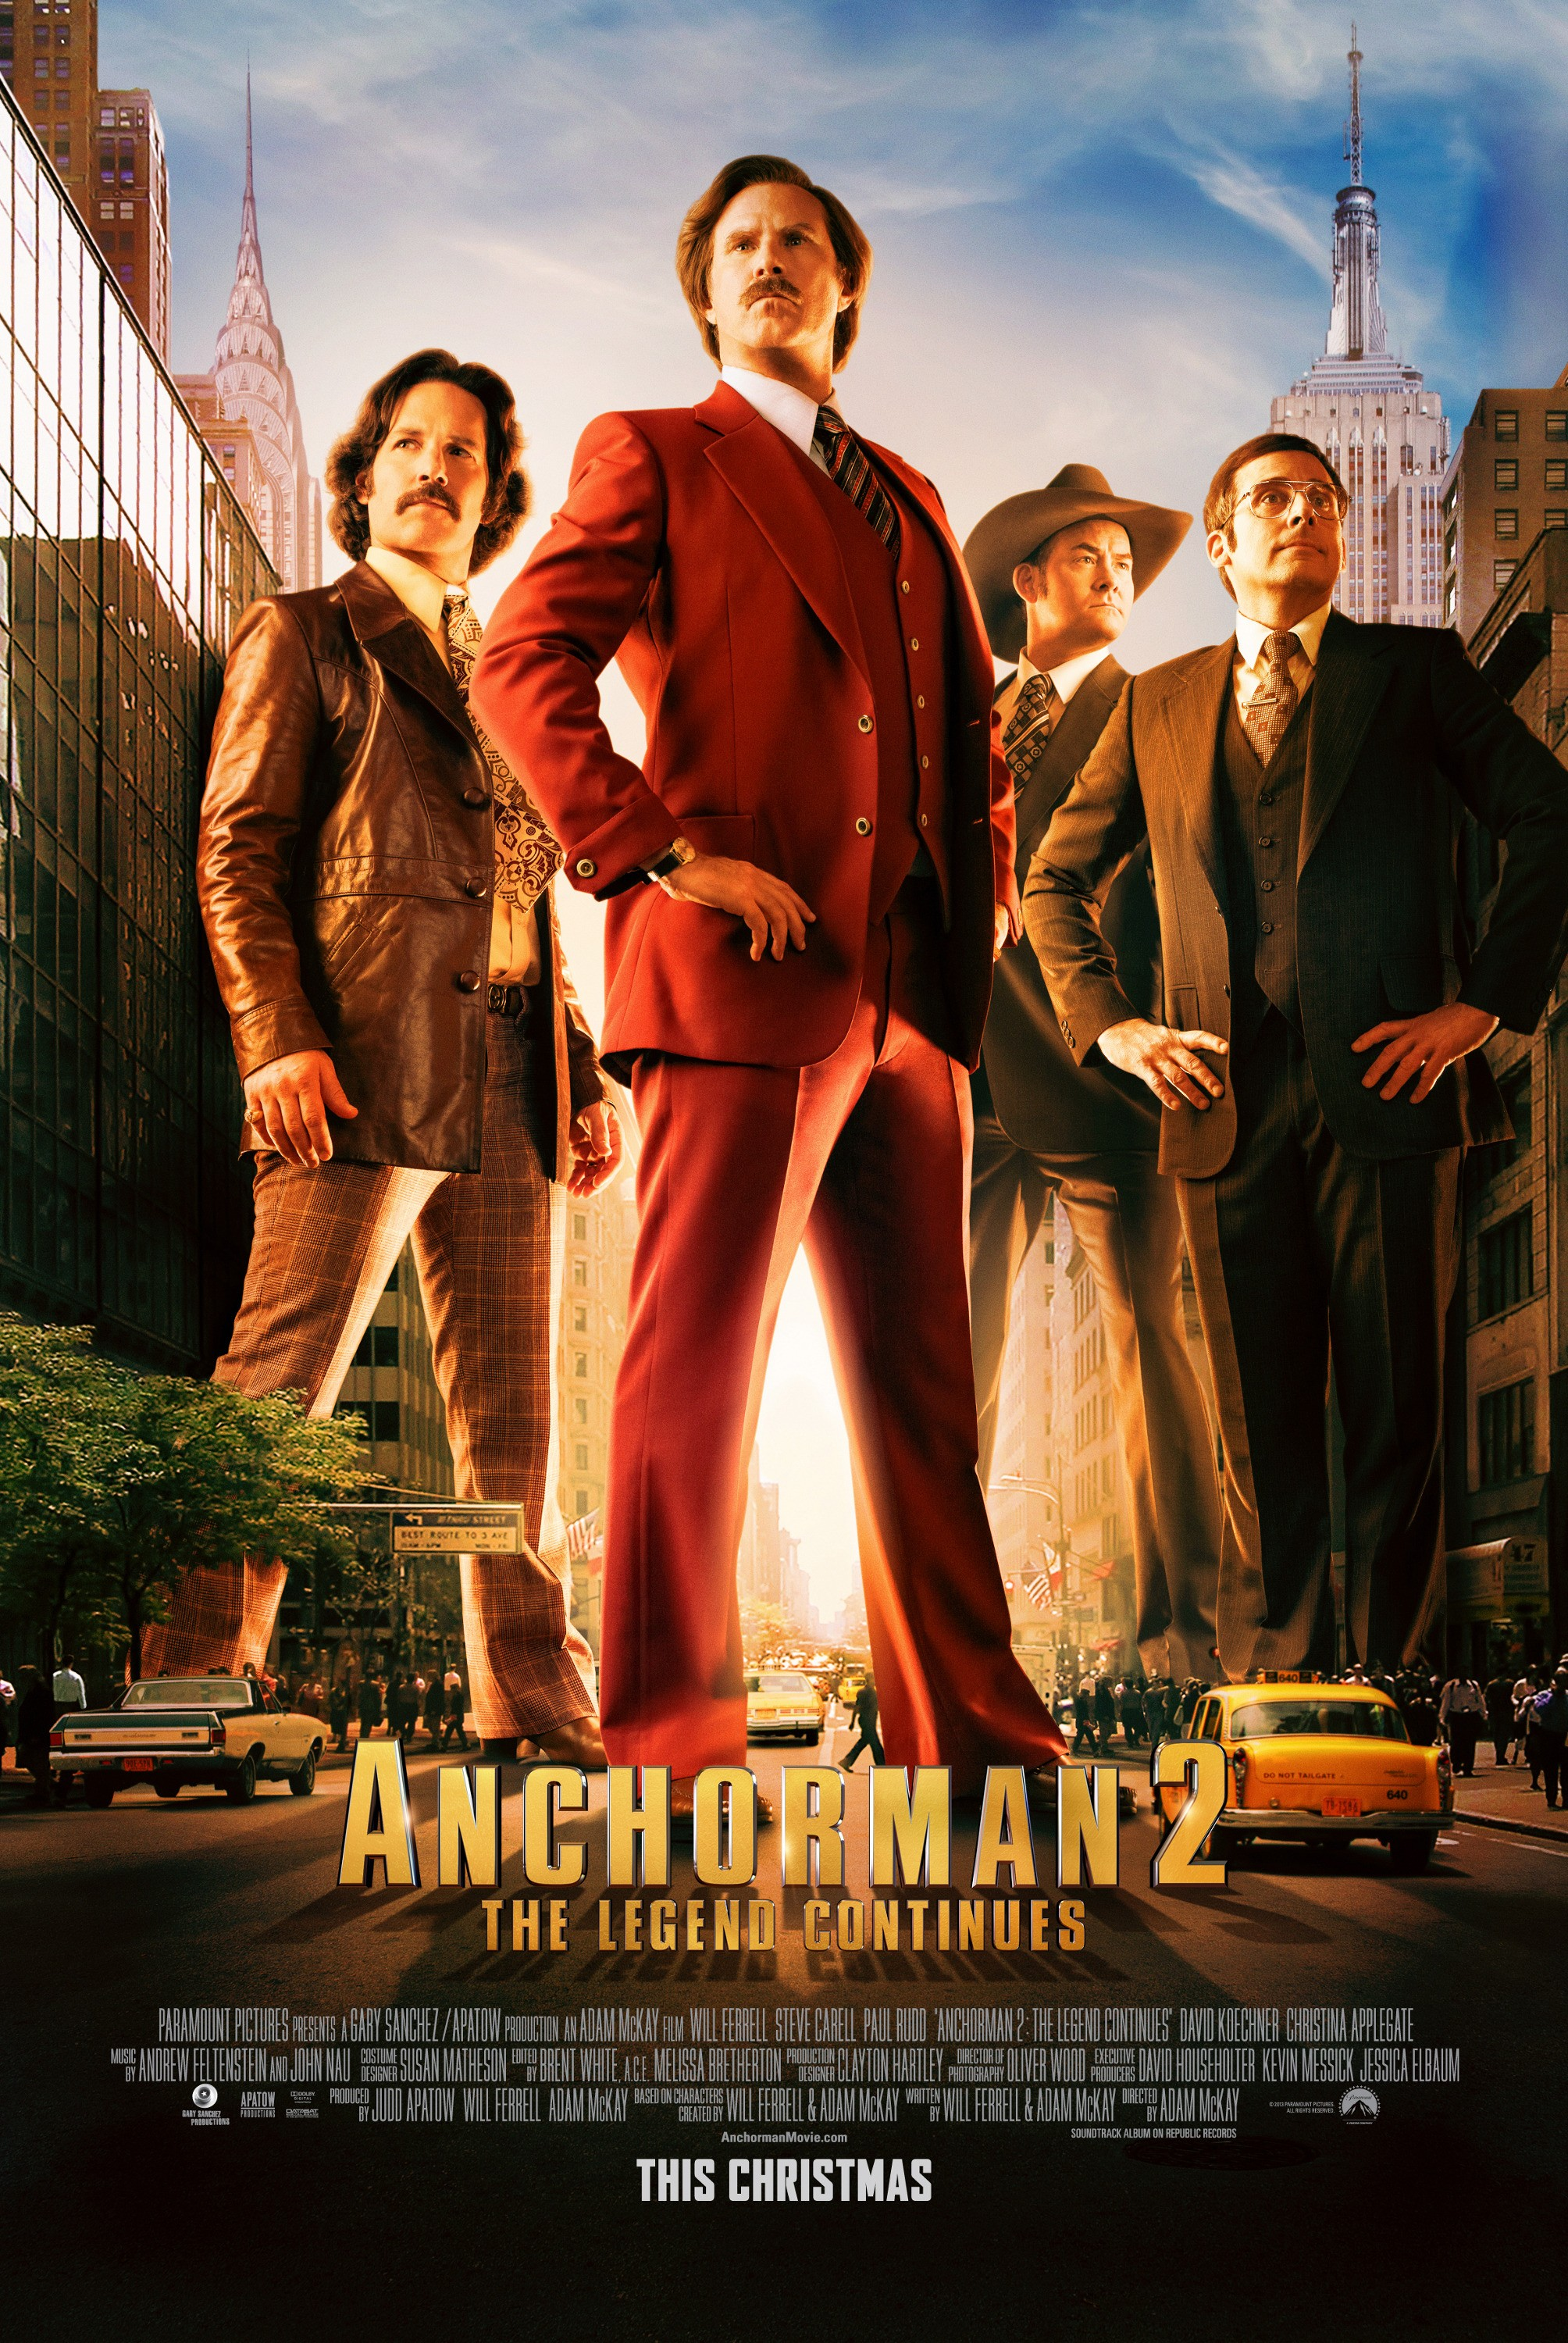 Anchorman The Legend Continues-Official Poster Banner PROMO POSTER-28OUTUBRO2013